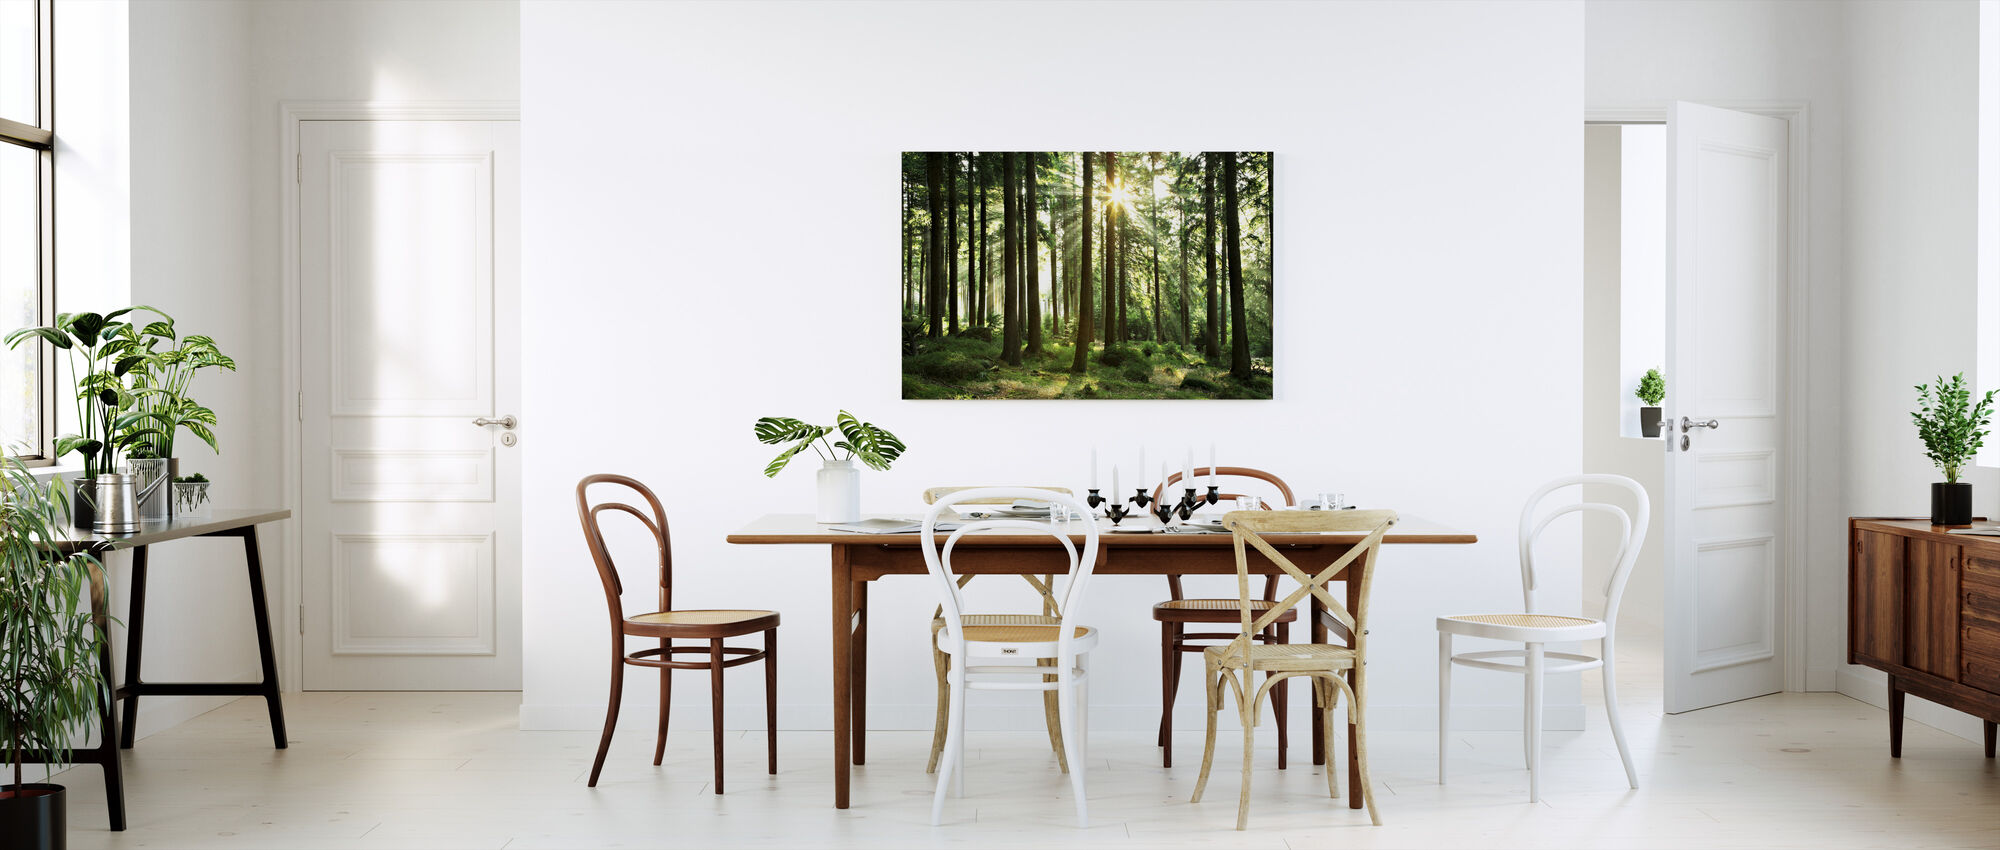 Sunbeam through Trees - Canvas print - Kitchen